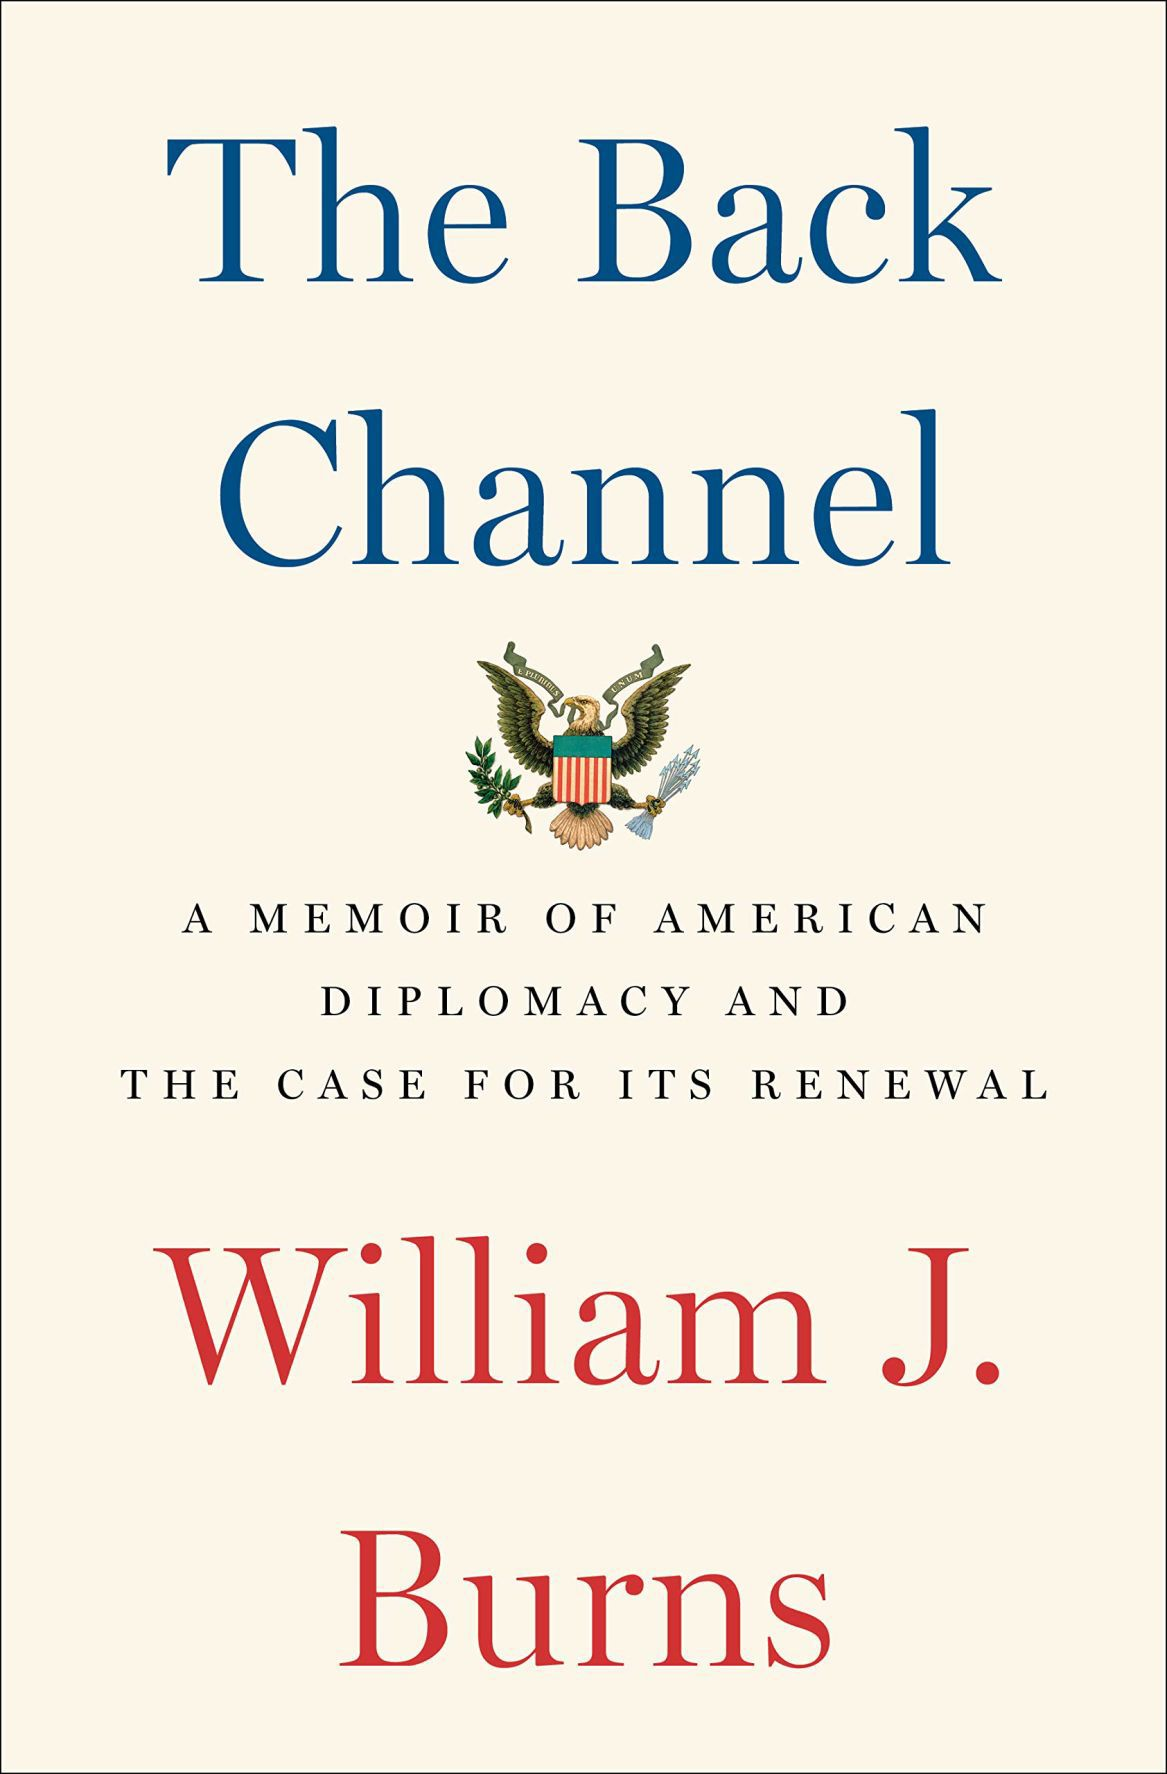 """The Back Channel"" by William J. Burns"